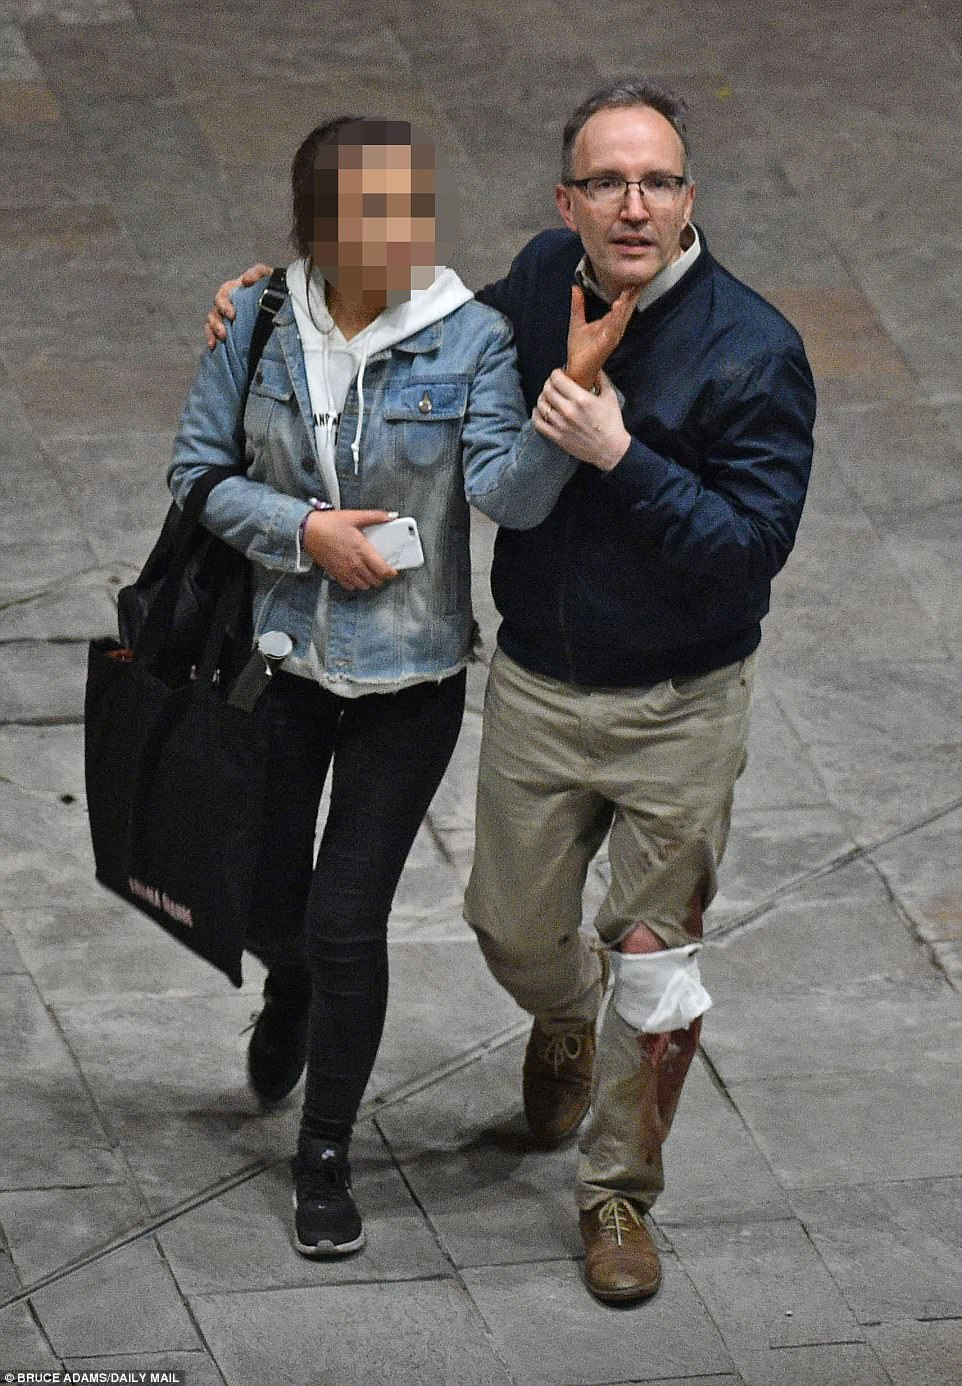 A man with an injured legs guides a teenage girl outside of the venue following the blast, the cause of which has not been determined for certain